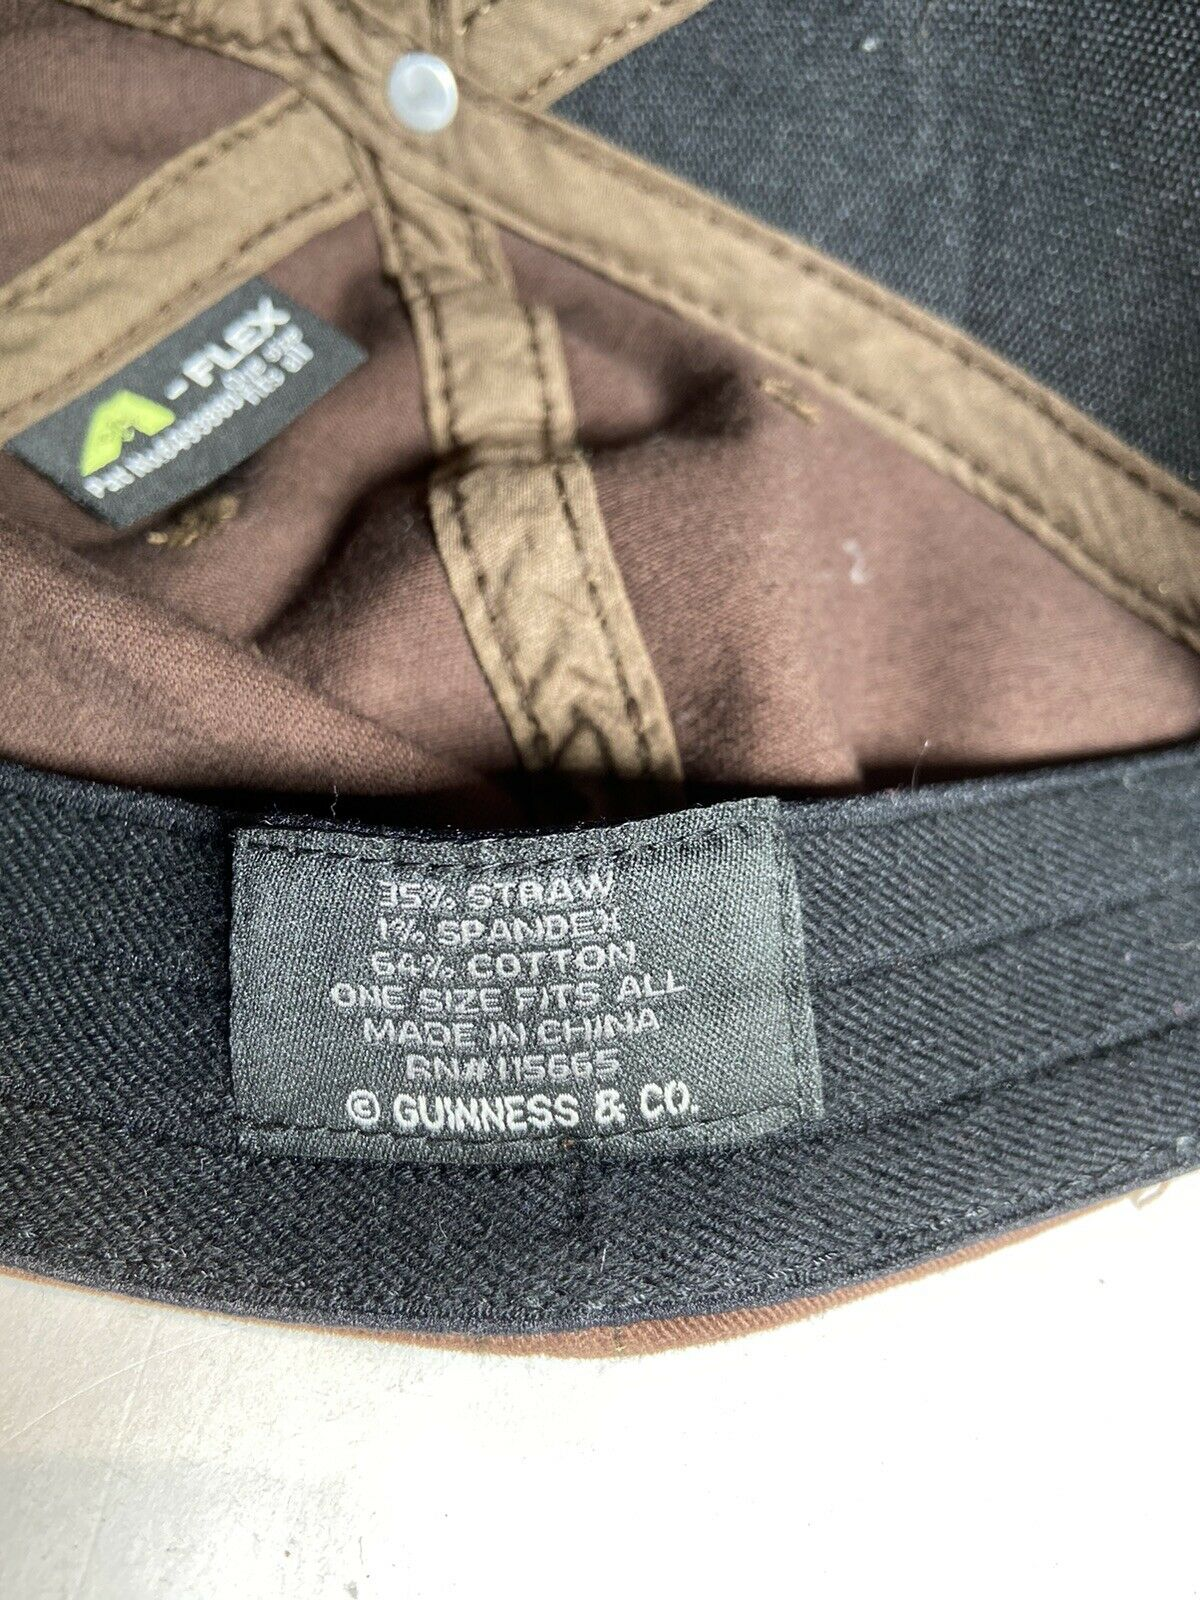 Guinness Beer Woven Straw Cap Hat OS - image 6